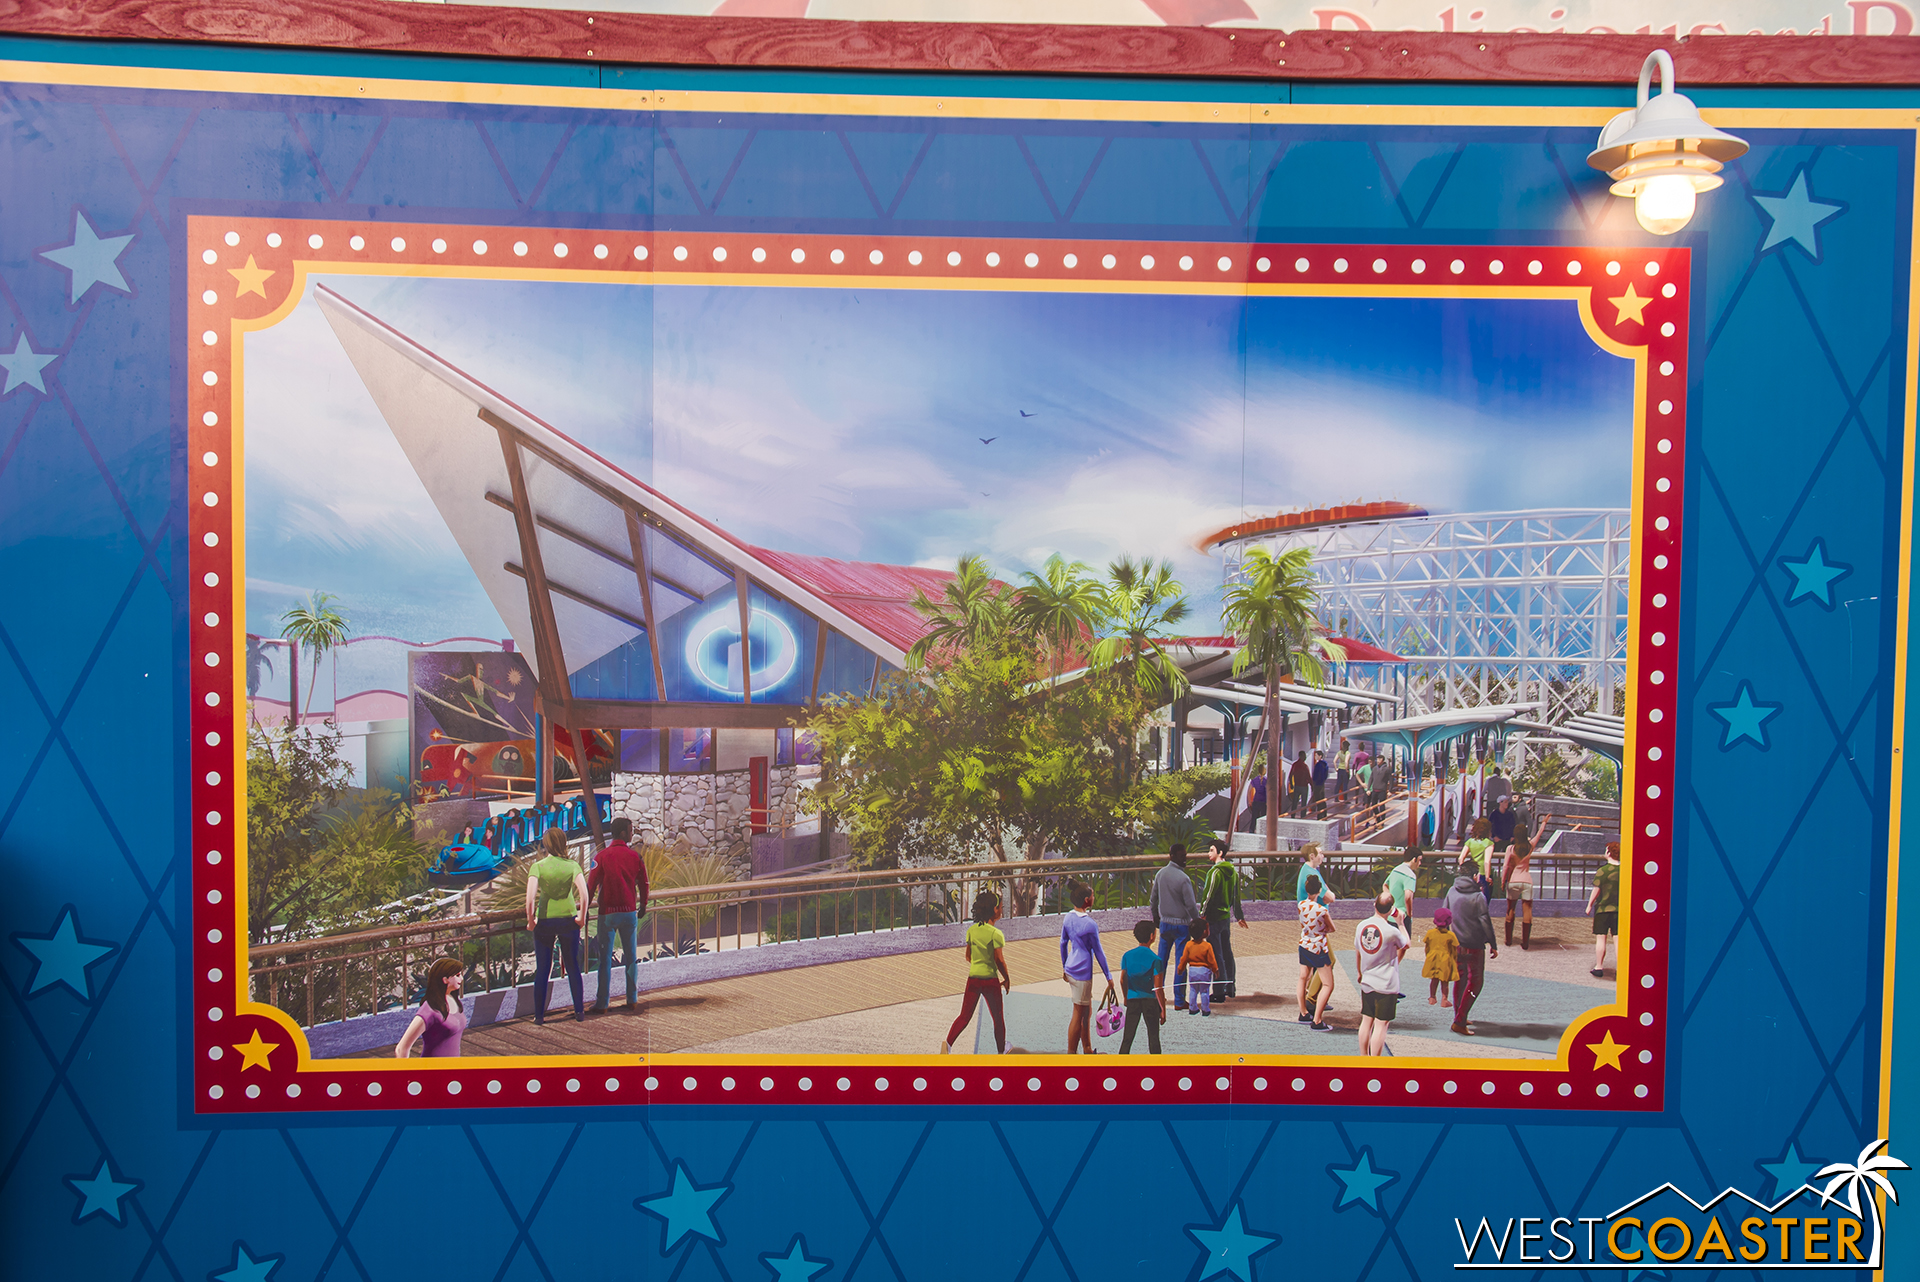 The station for the reimagined Incredicoaster features a bit of mid-century style.